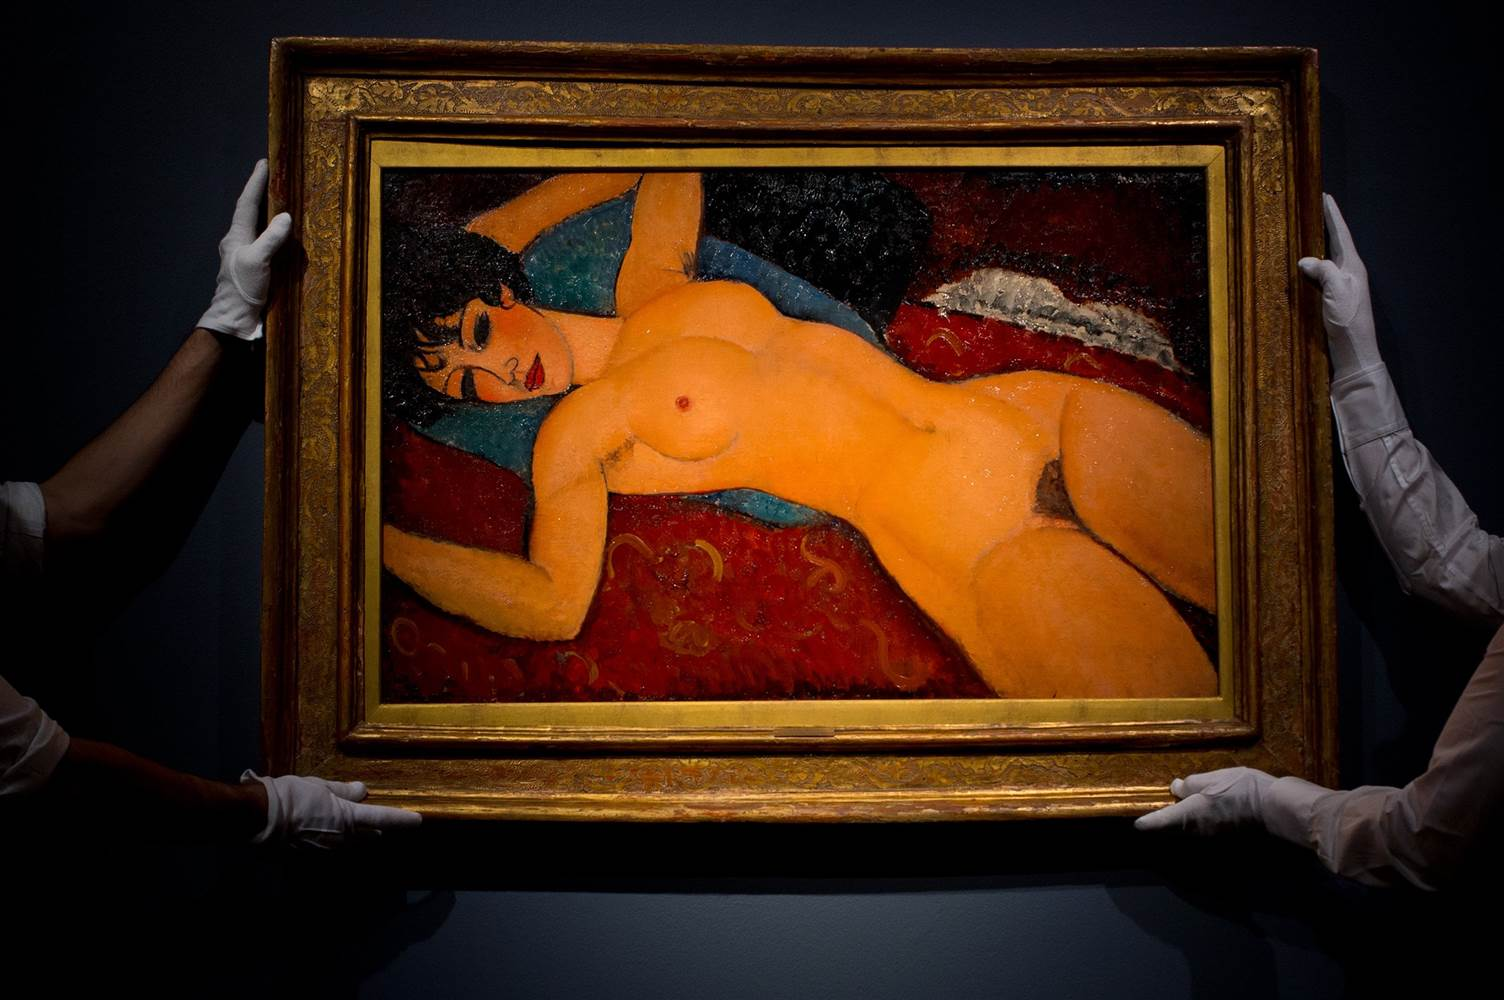 Top Price. Le 5 opere più costose di Amedeo Modigliani